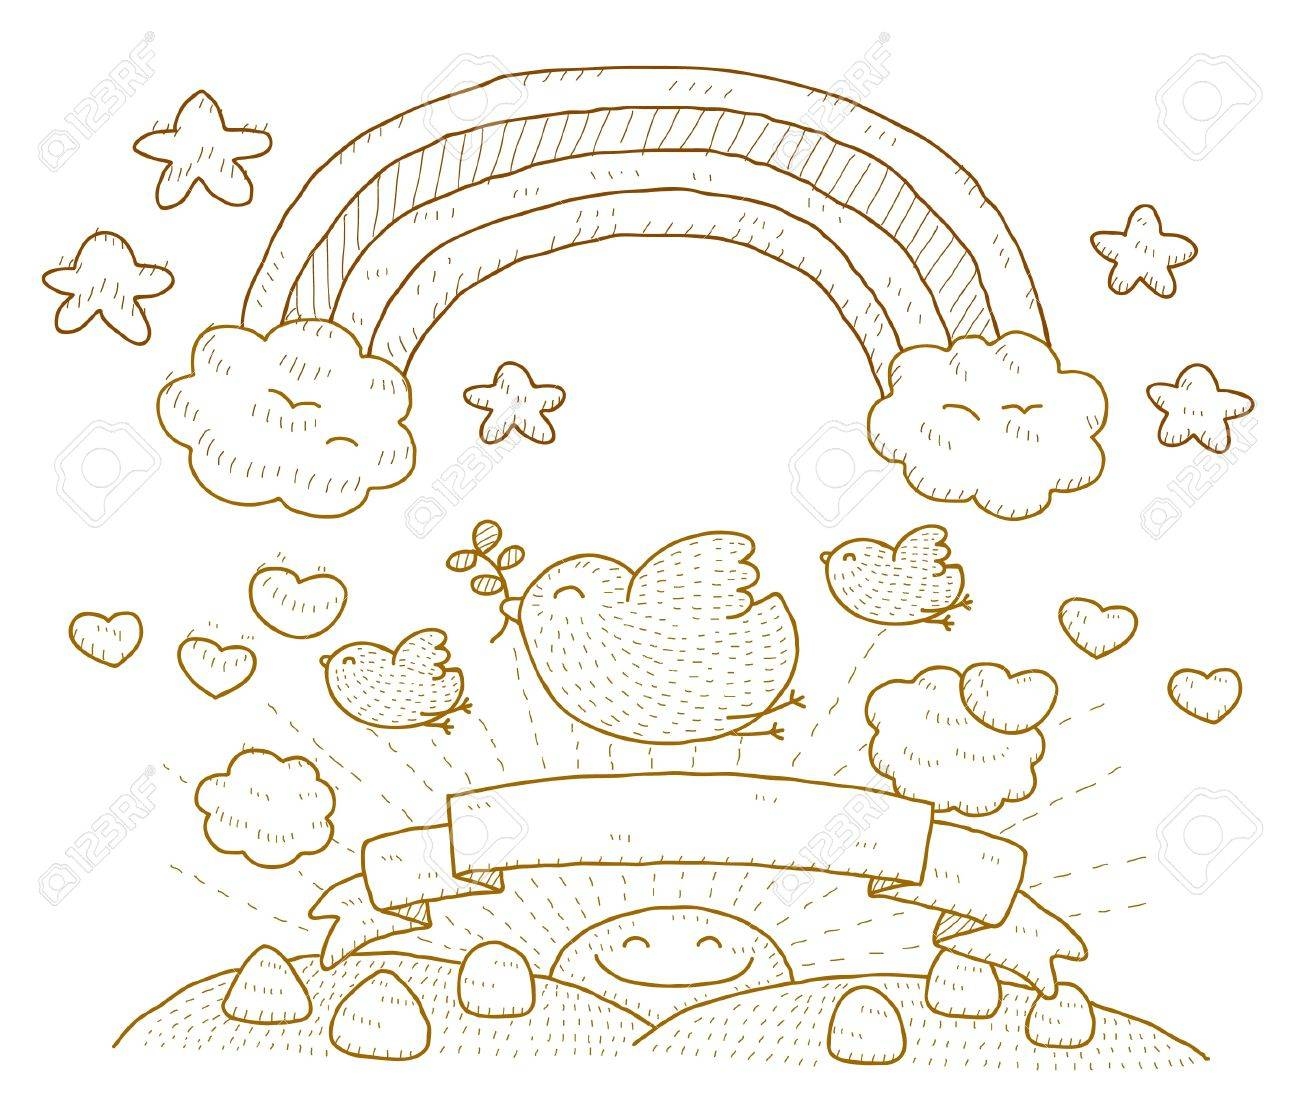 Dove,cloud,rainbow and Simply peace Stock Vector - 10739899